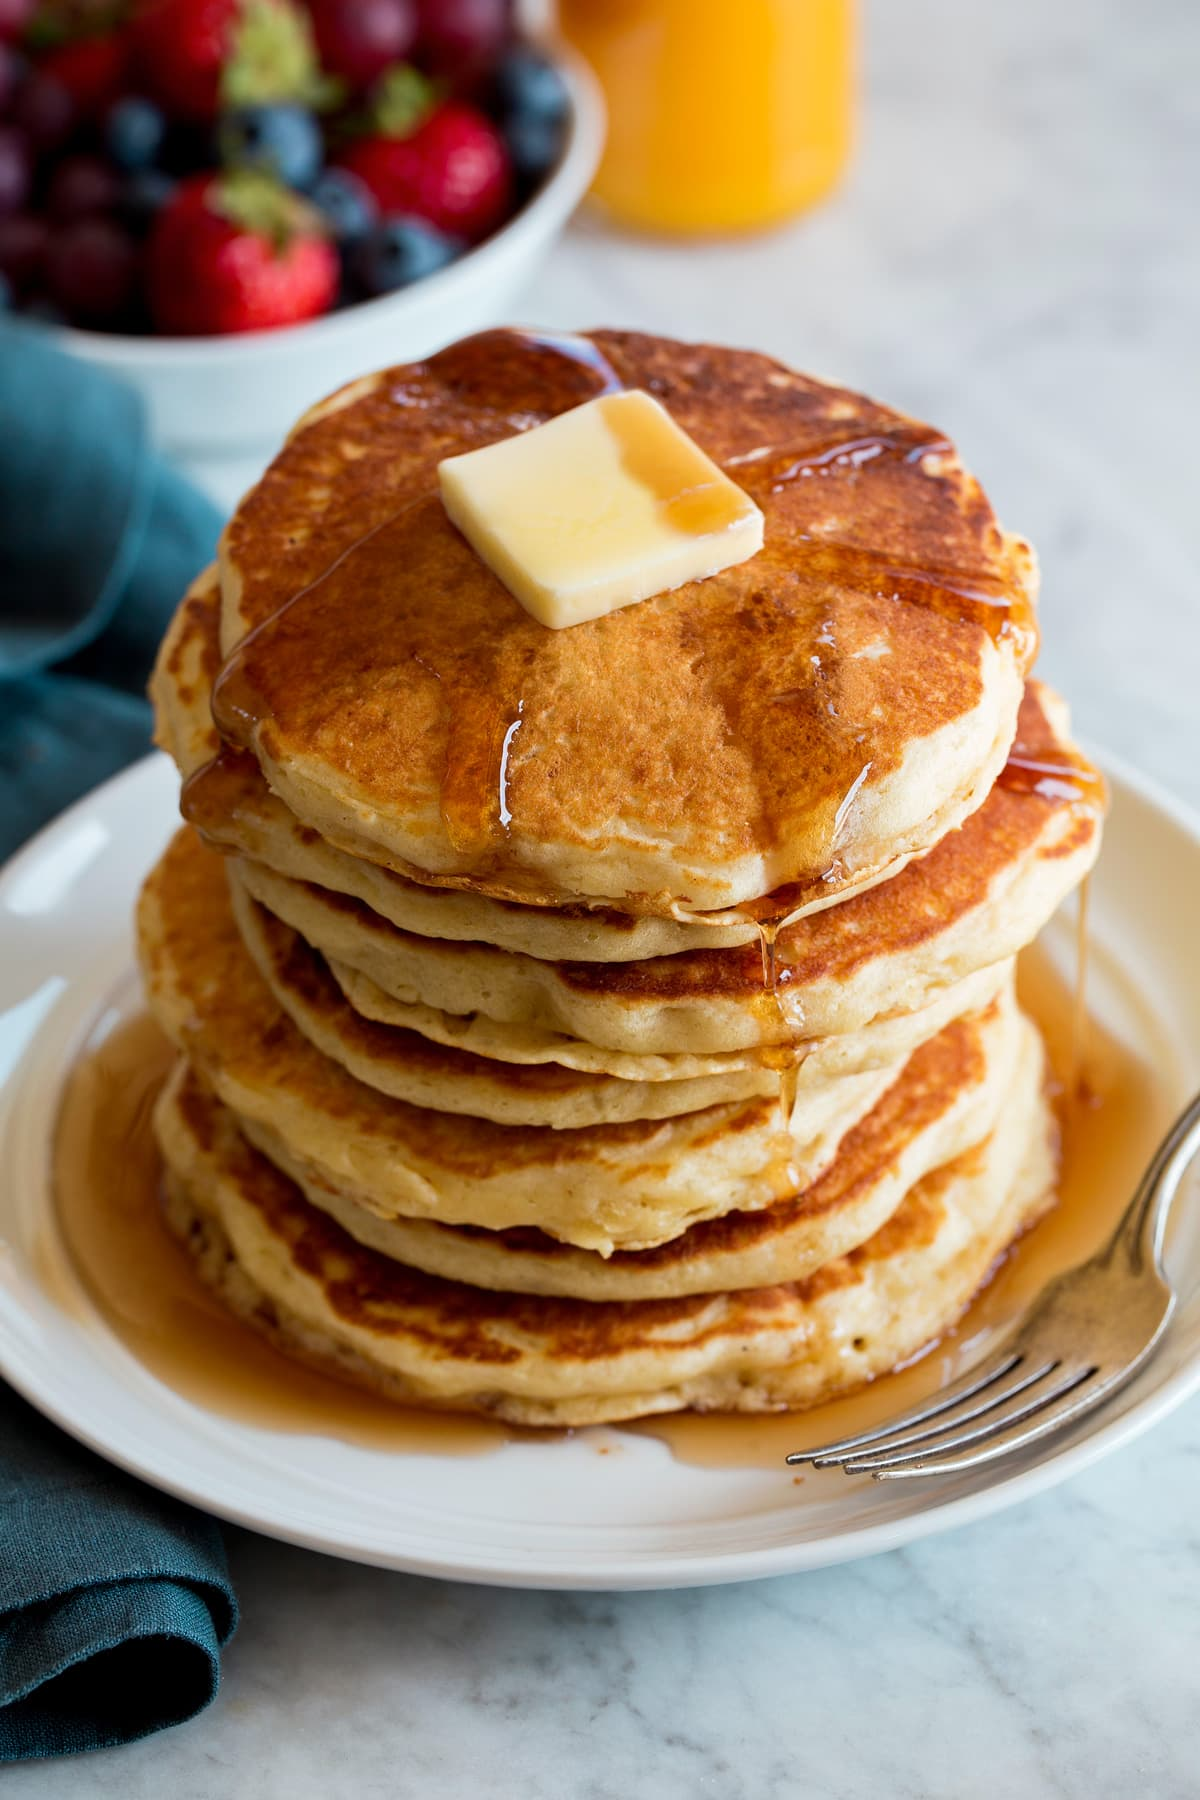 Stack of homemade pancakes on a white plate. Pancakes are topped with maple syrup and butter.